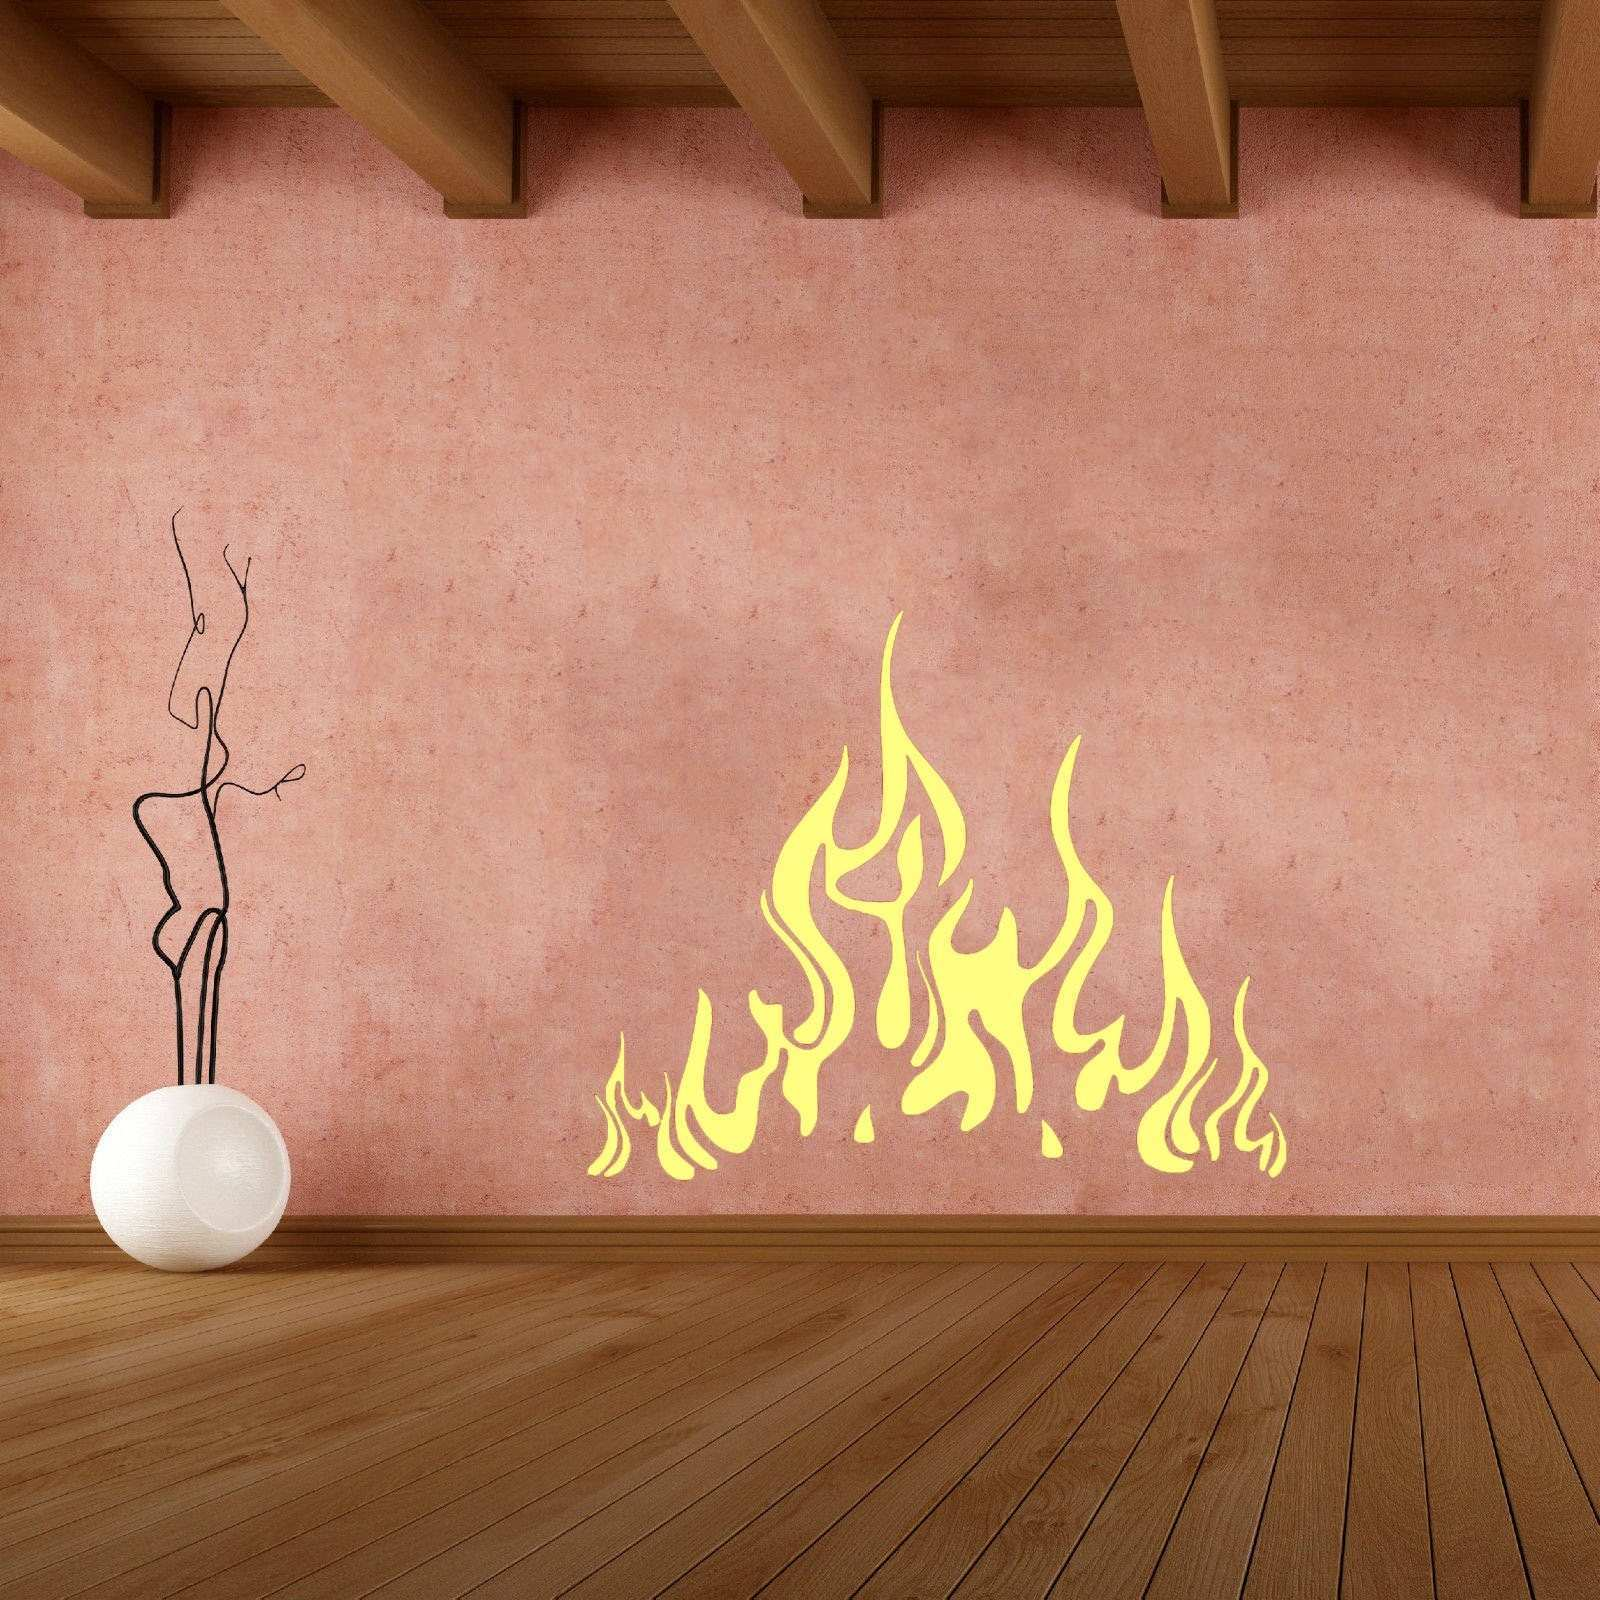 Special Wall Decals Fire Flame Decal Vinyl Sticker Fireplace Home